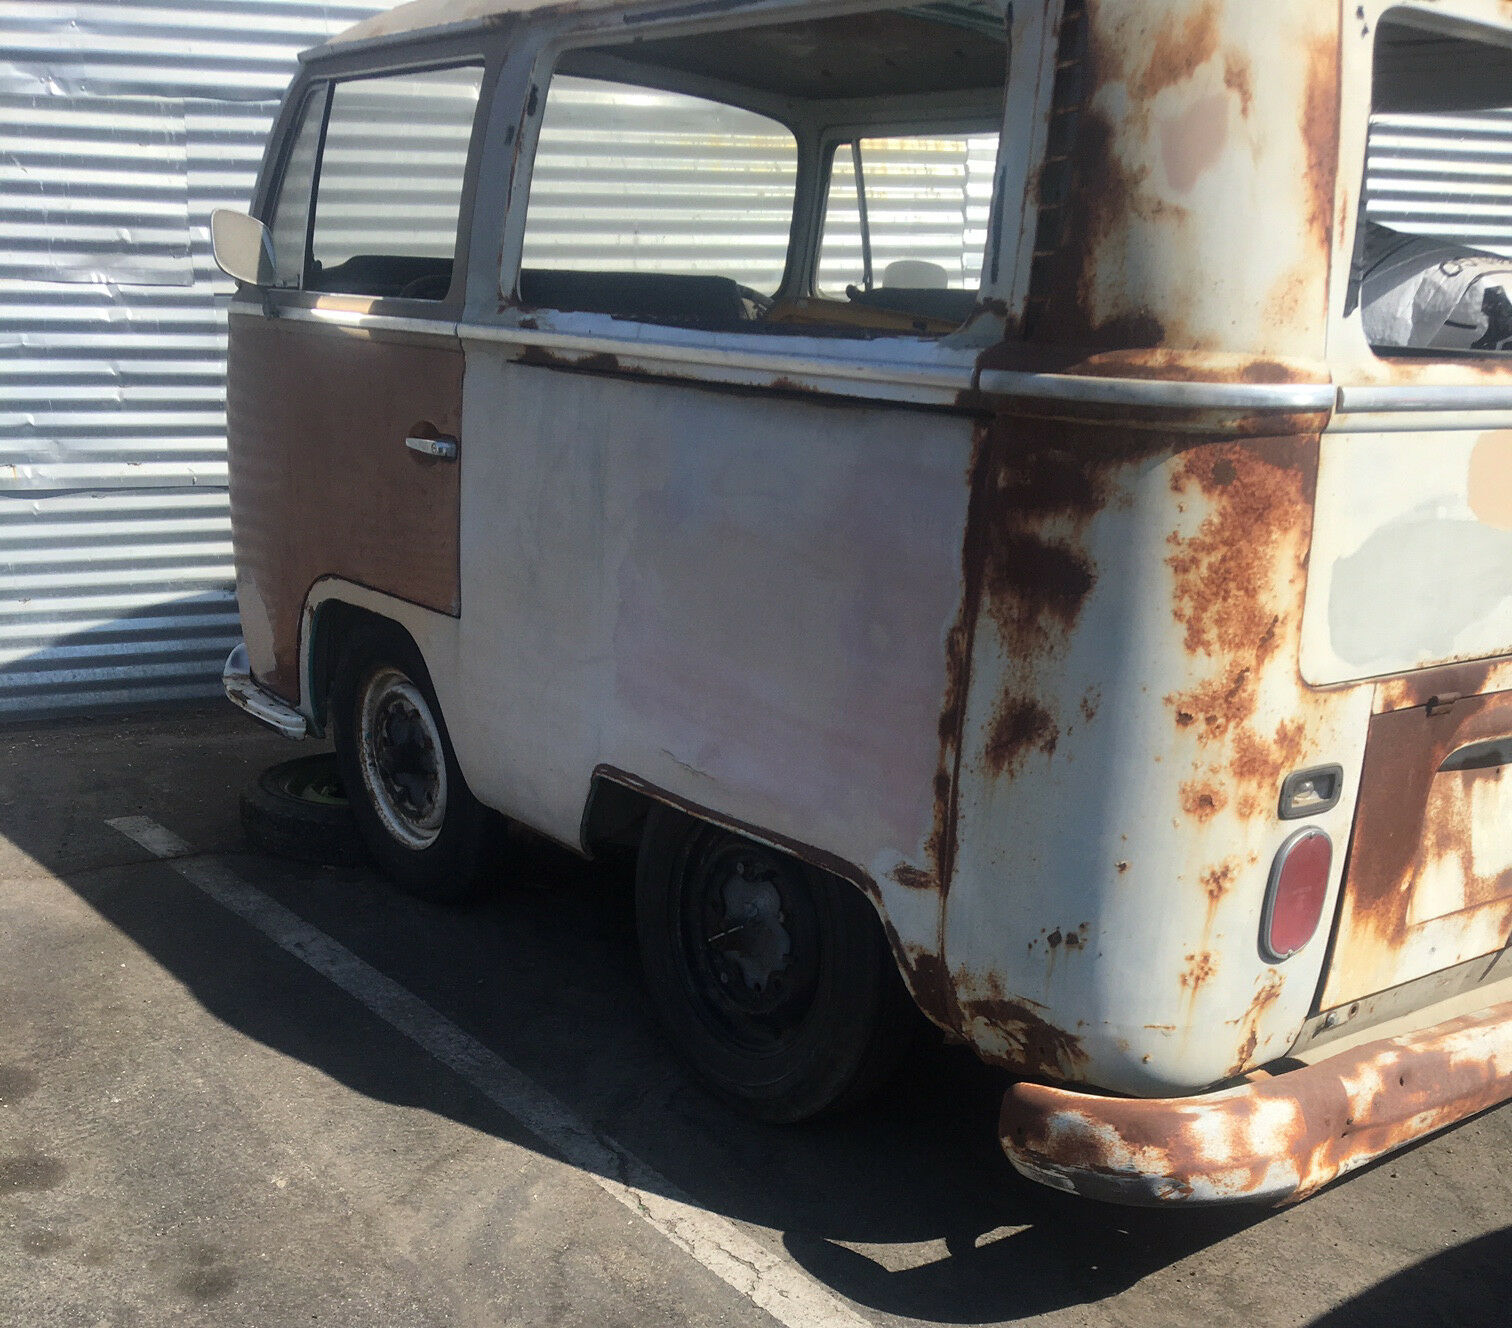 1968 Volkswagen Bus/Vanagon  1968 vw Shorty Bus - All new engine and drive train!!!